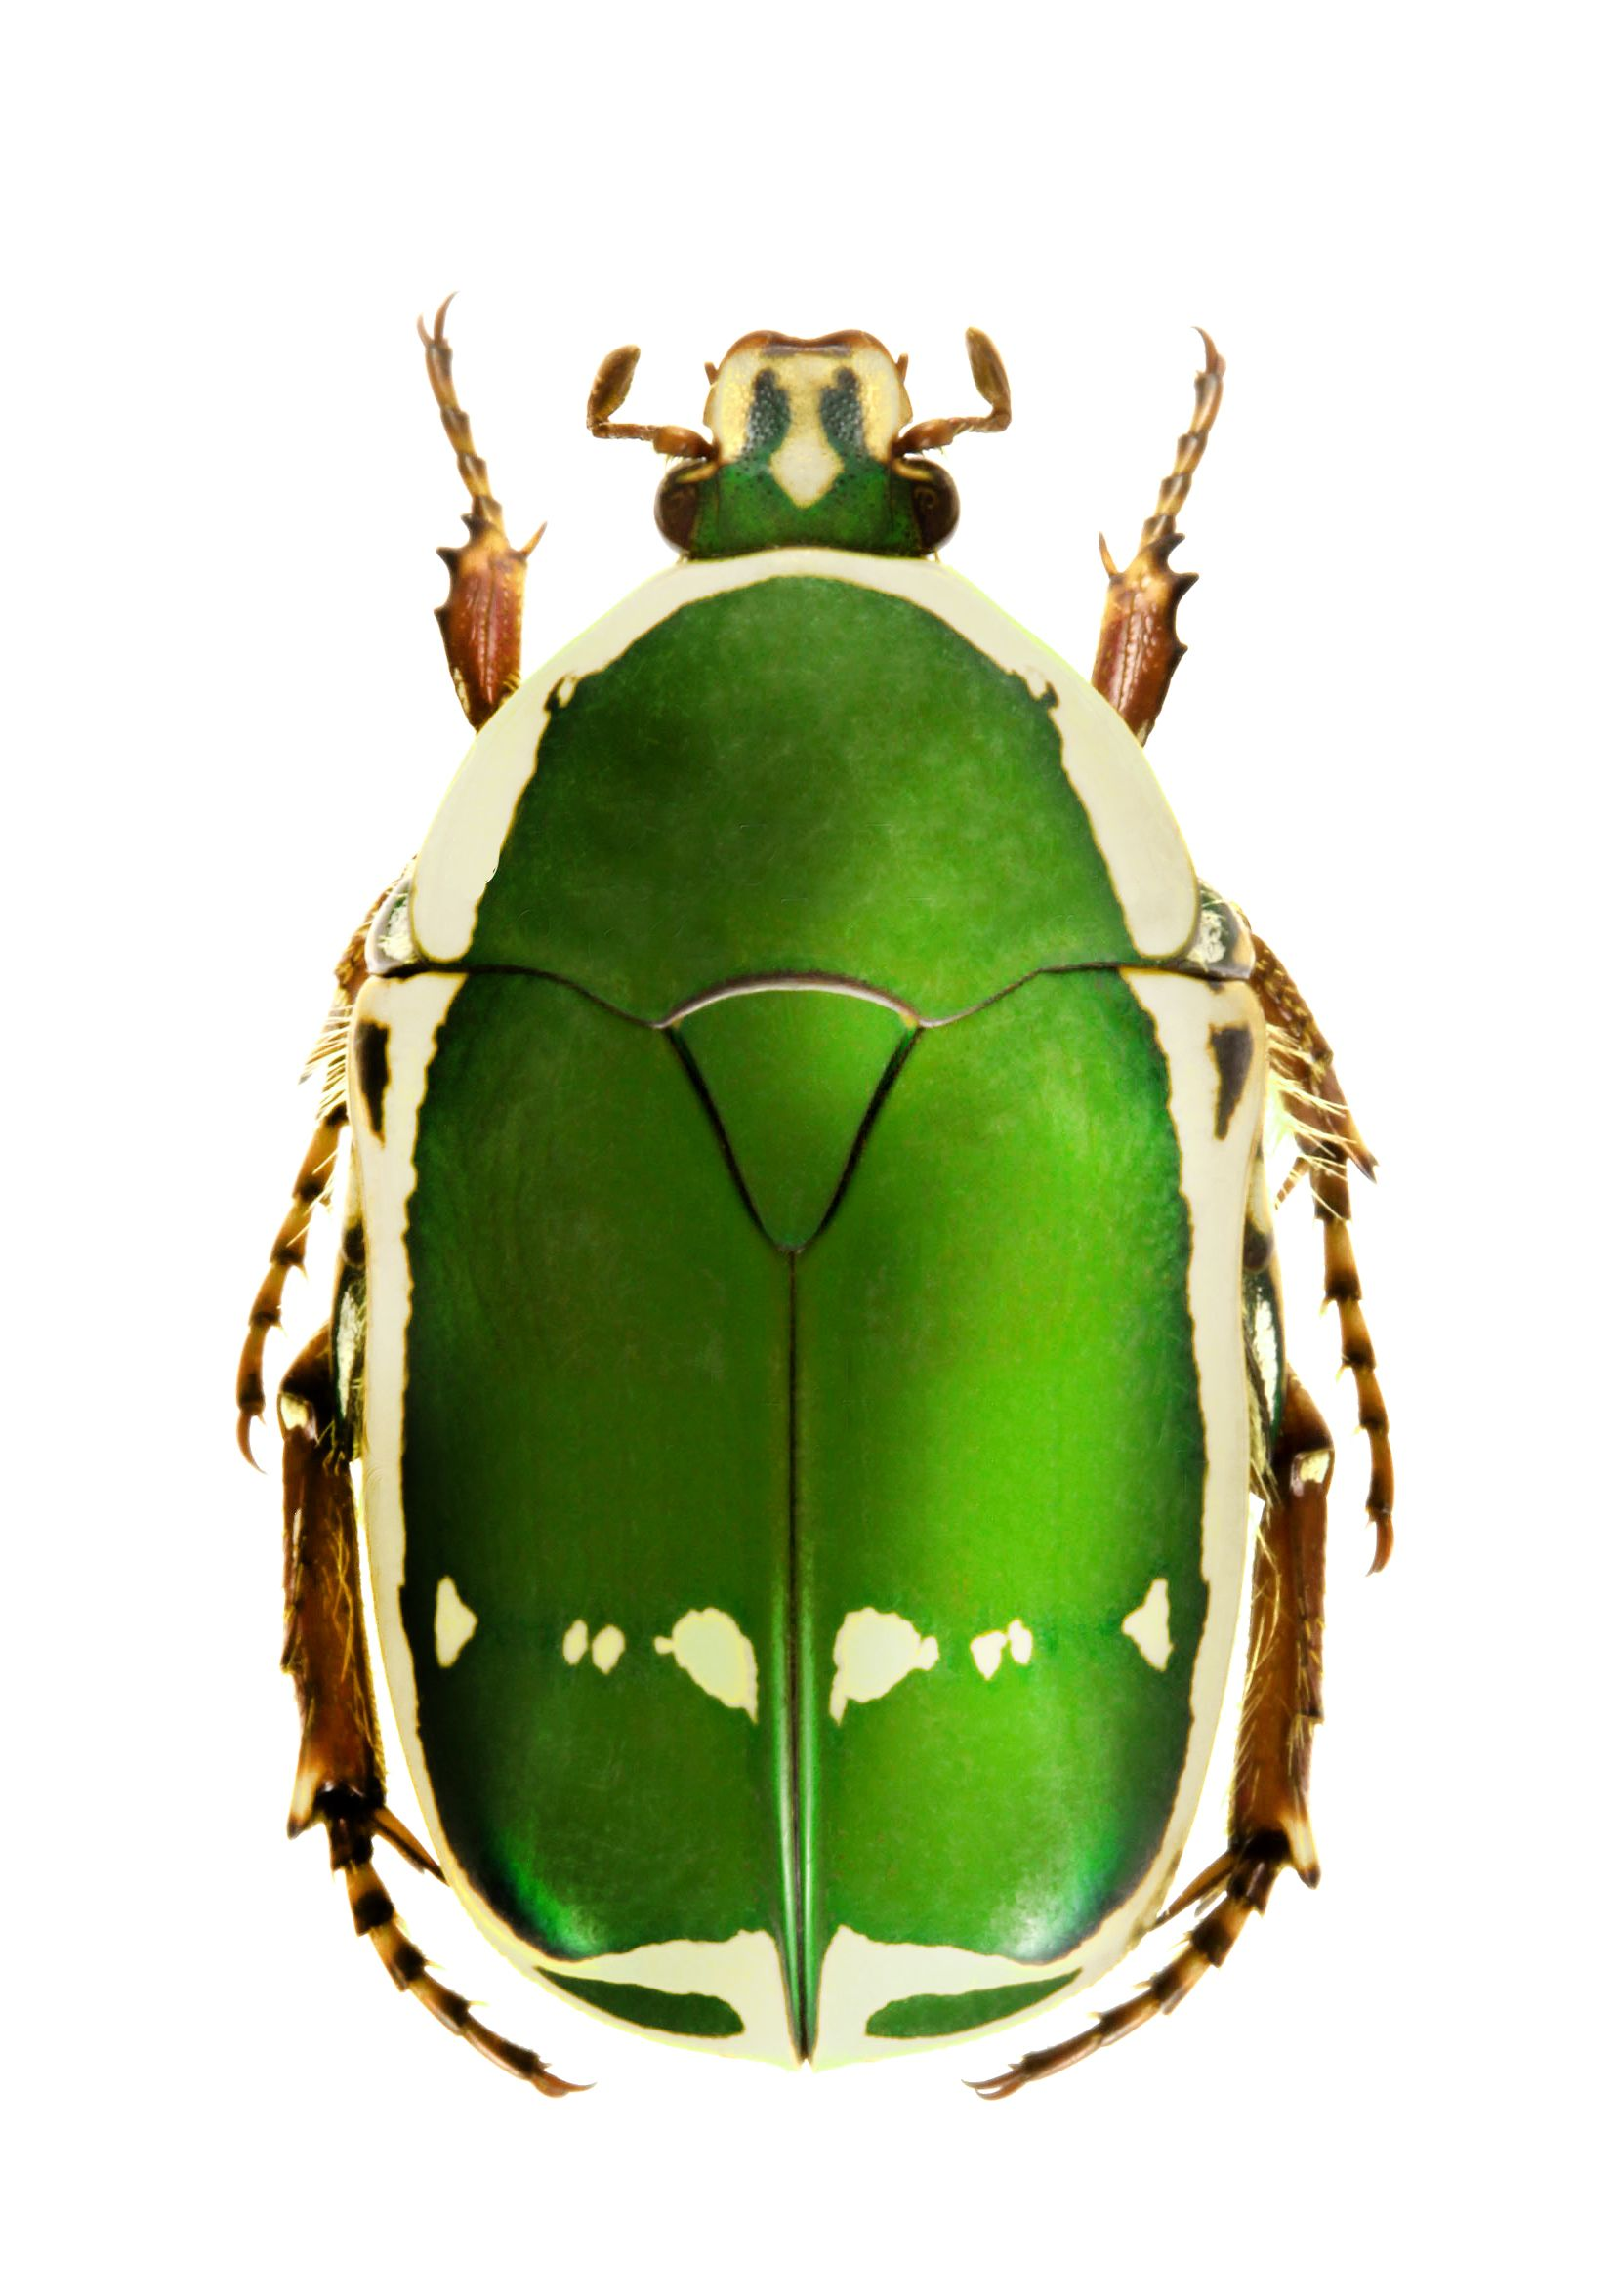 Pachnoda stehelini Beetles Beetle insect, Weird insects